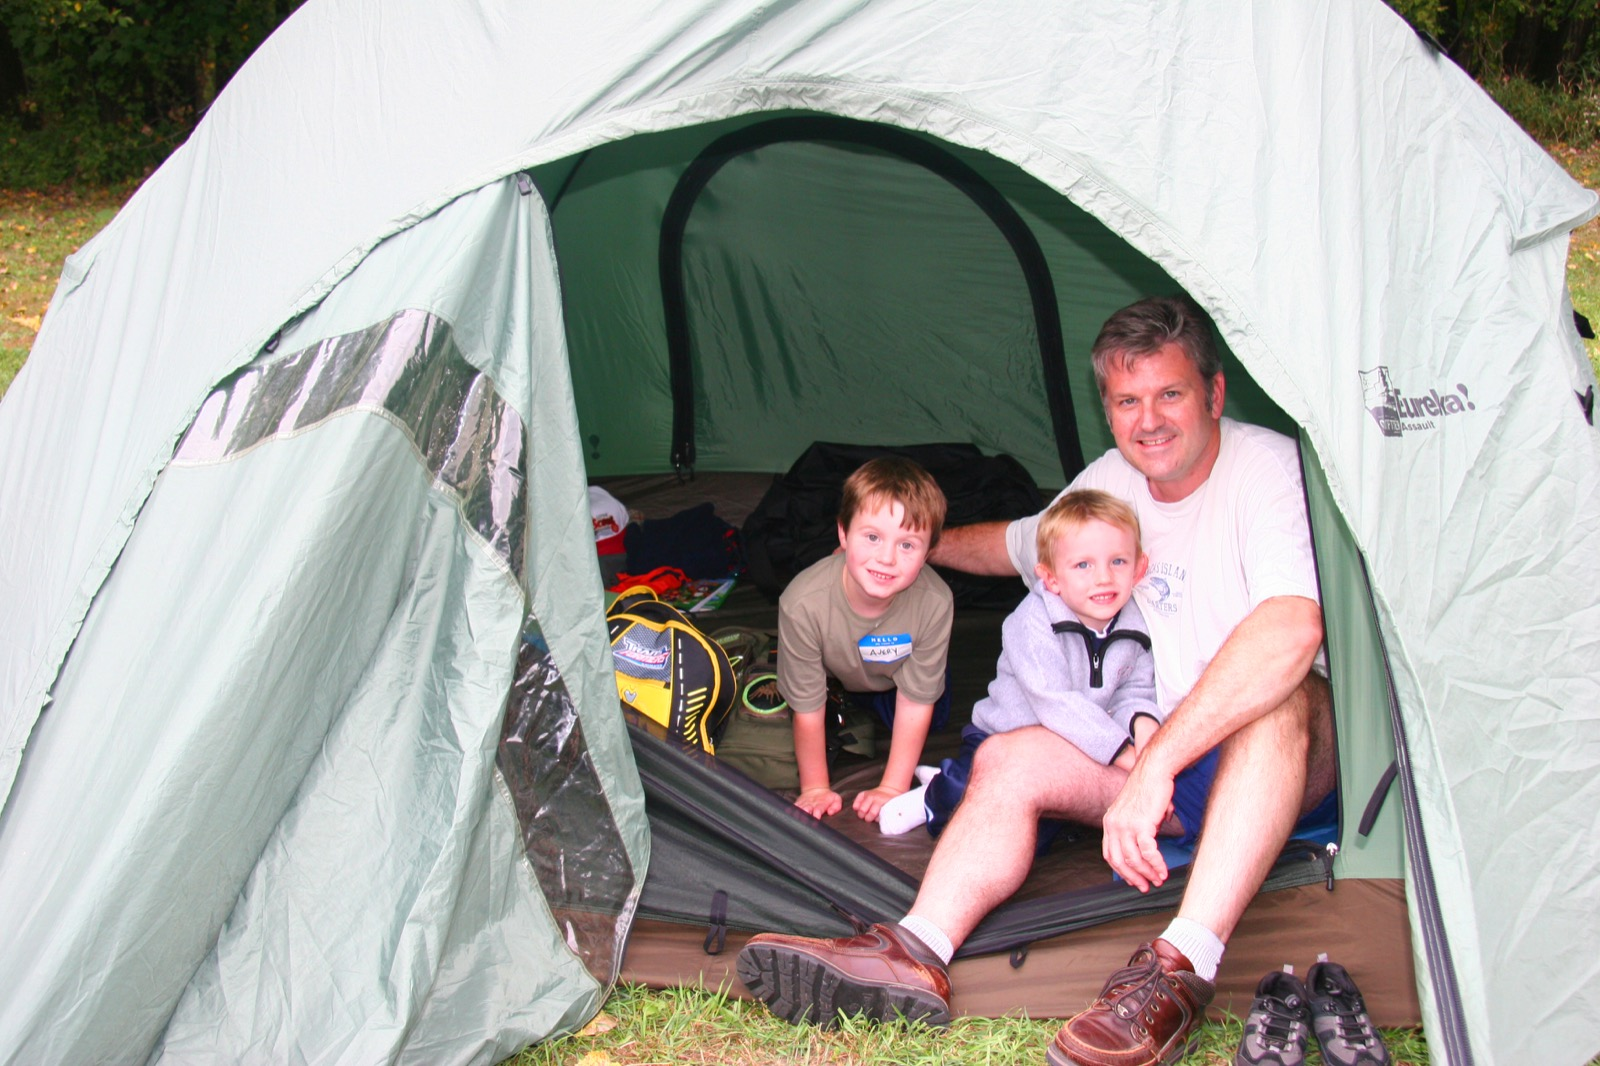 A father and two children peak out of their tent on a Family Overnight at Fort Snelling State Park.